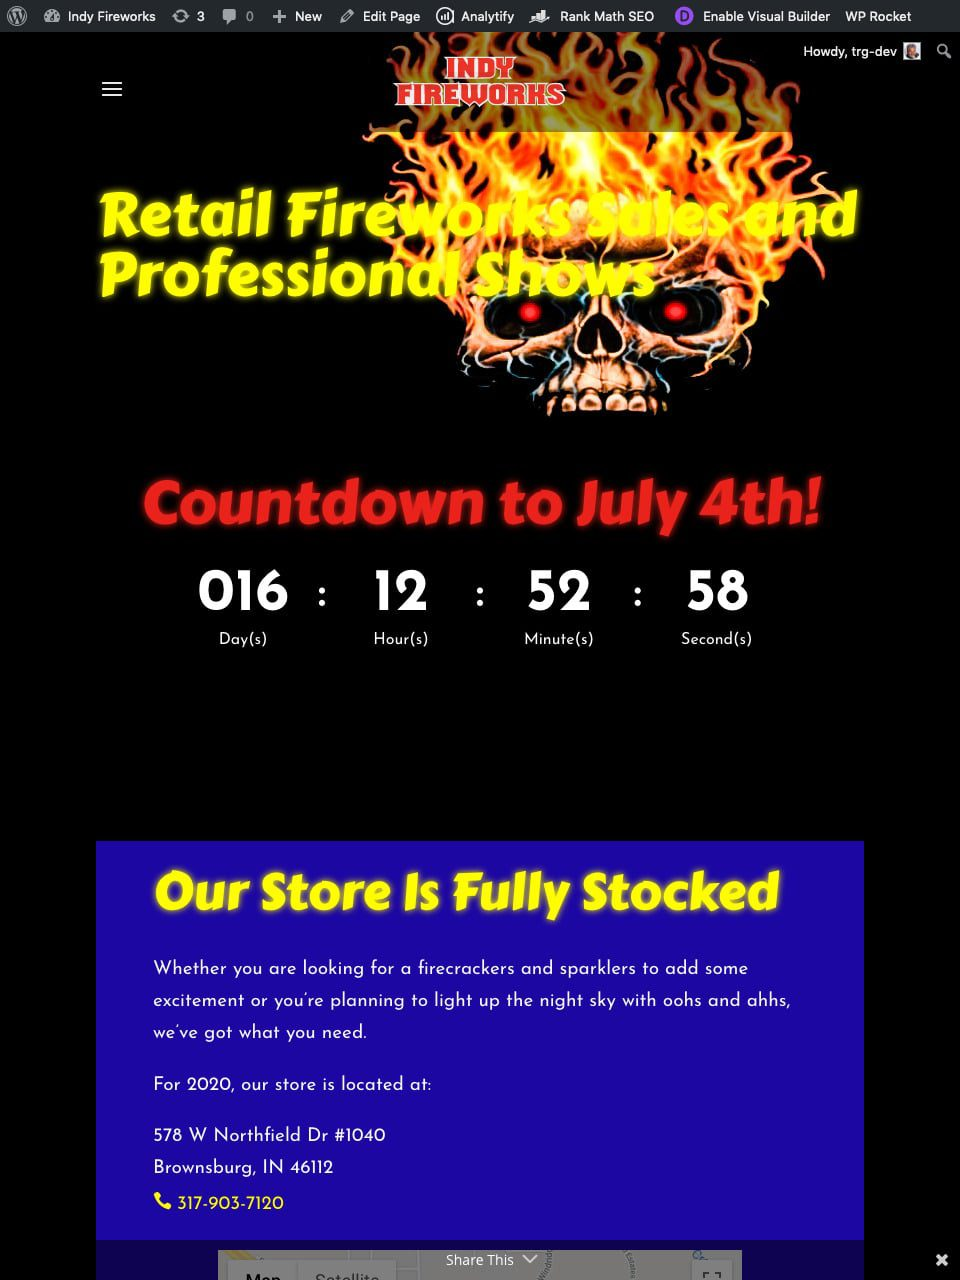 Indy Fireworks Home Page Tablet Screenshot